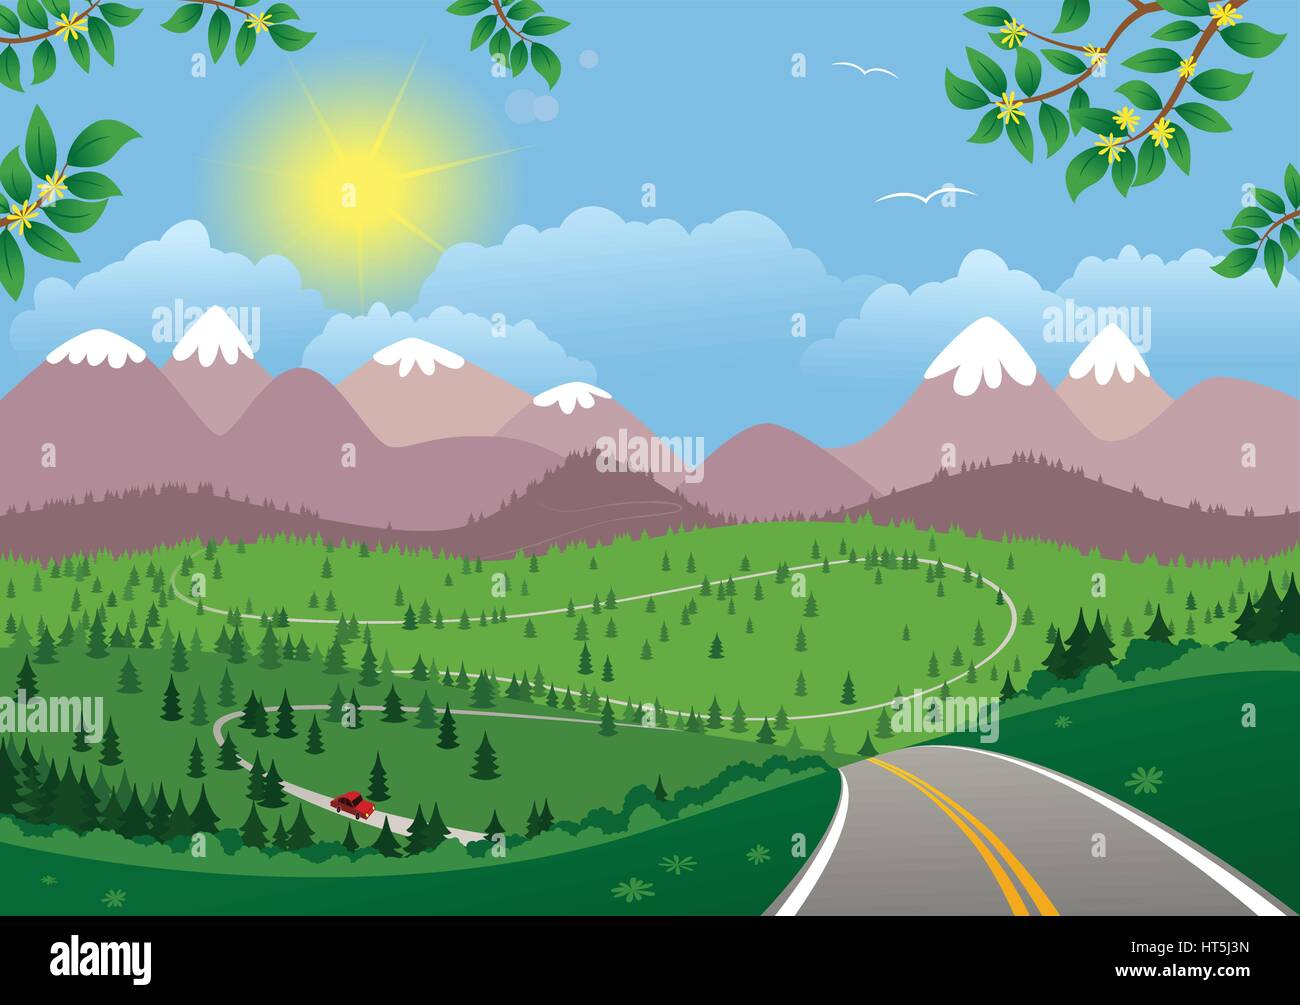 A mountainous landscape and twisting road on a sunny day. - Stock Vector